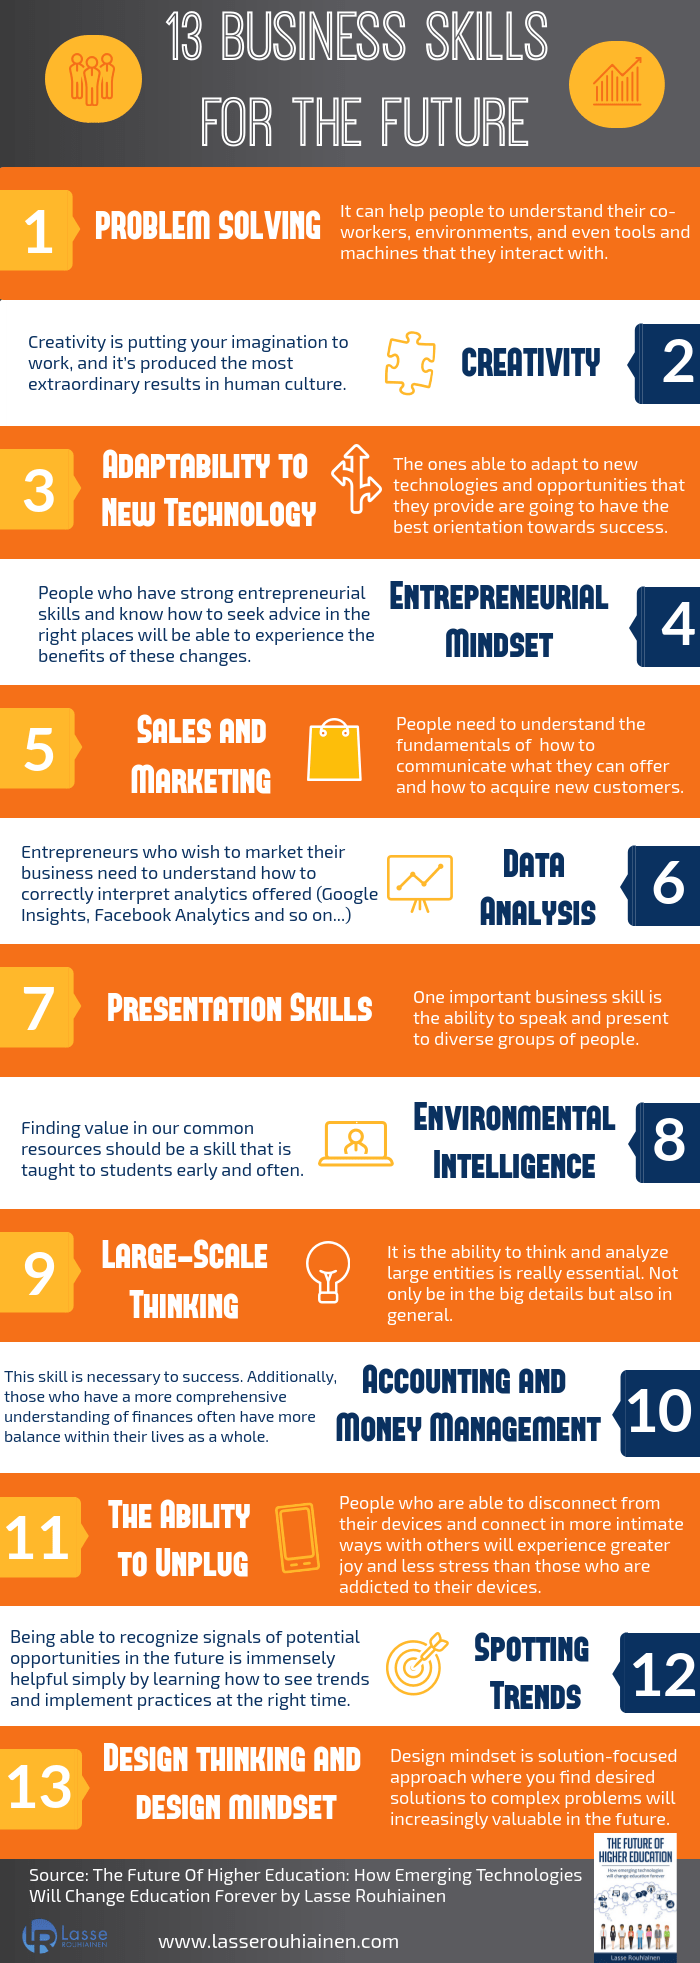 13 Business Skills For The Future (Infographic)